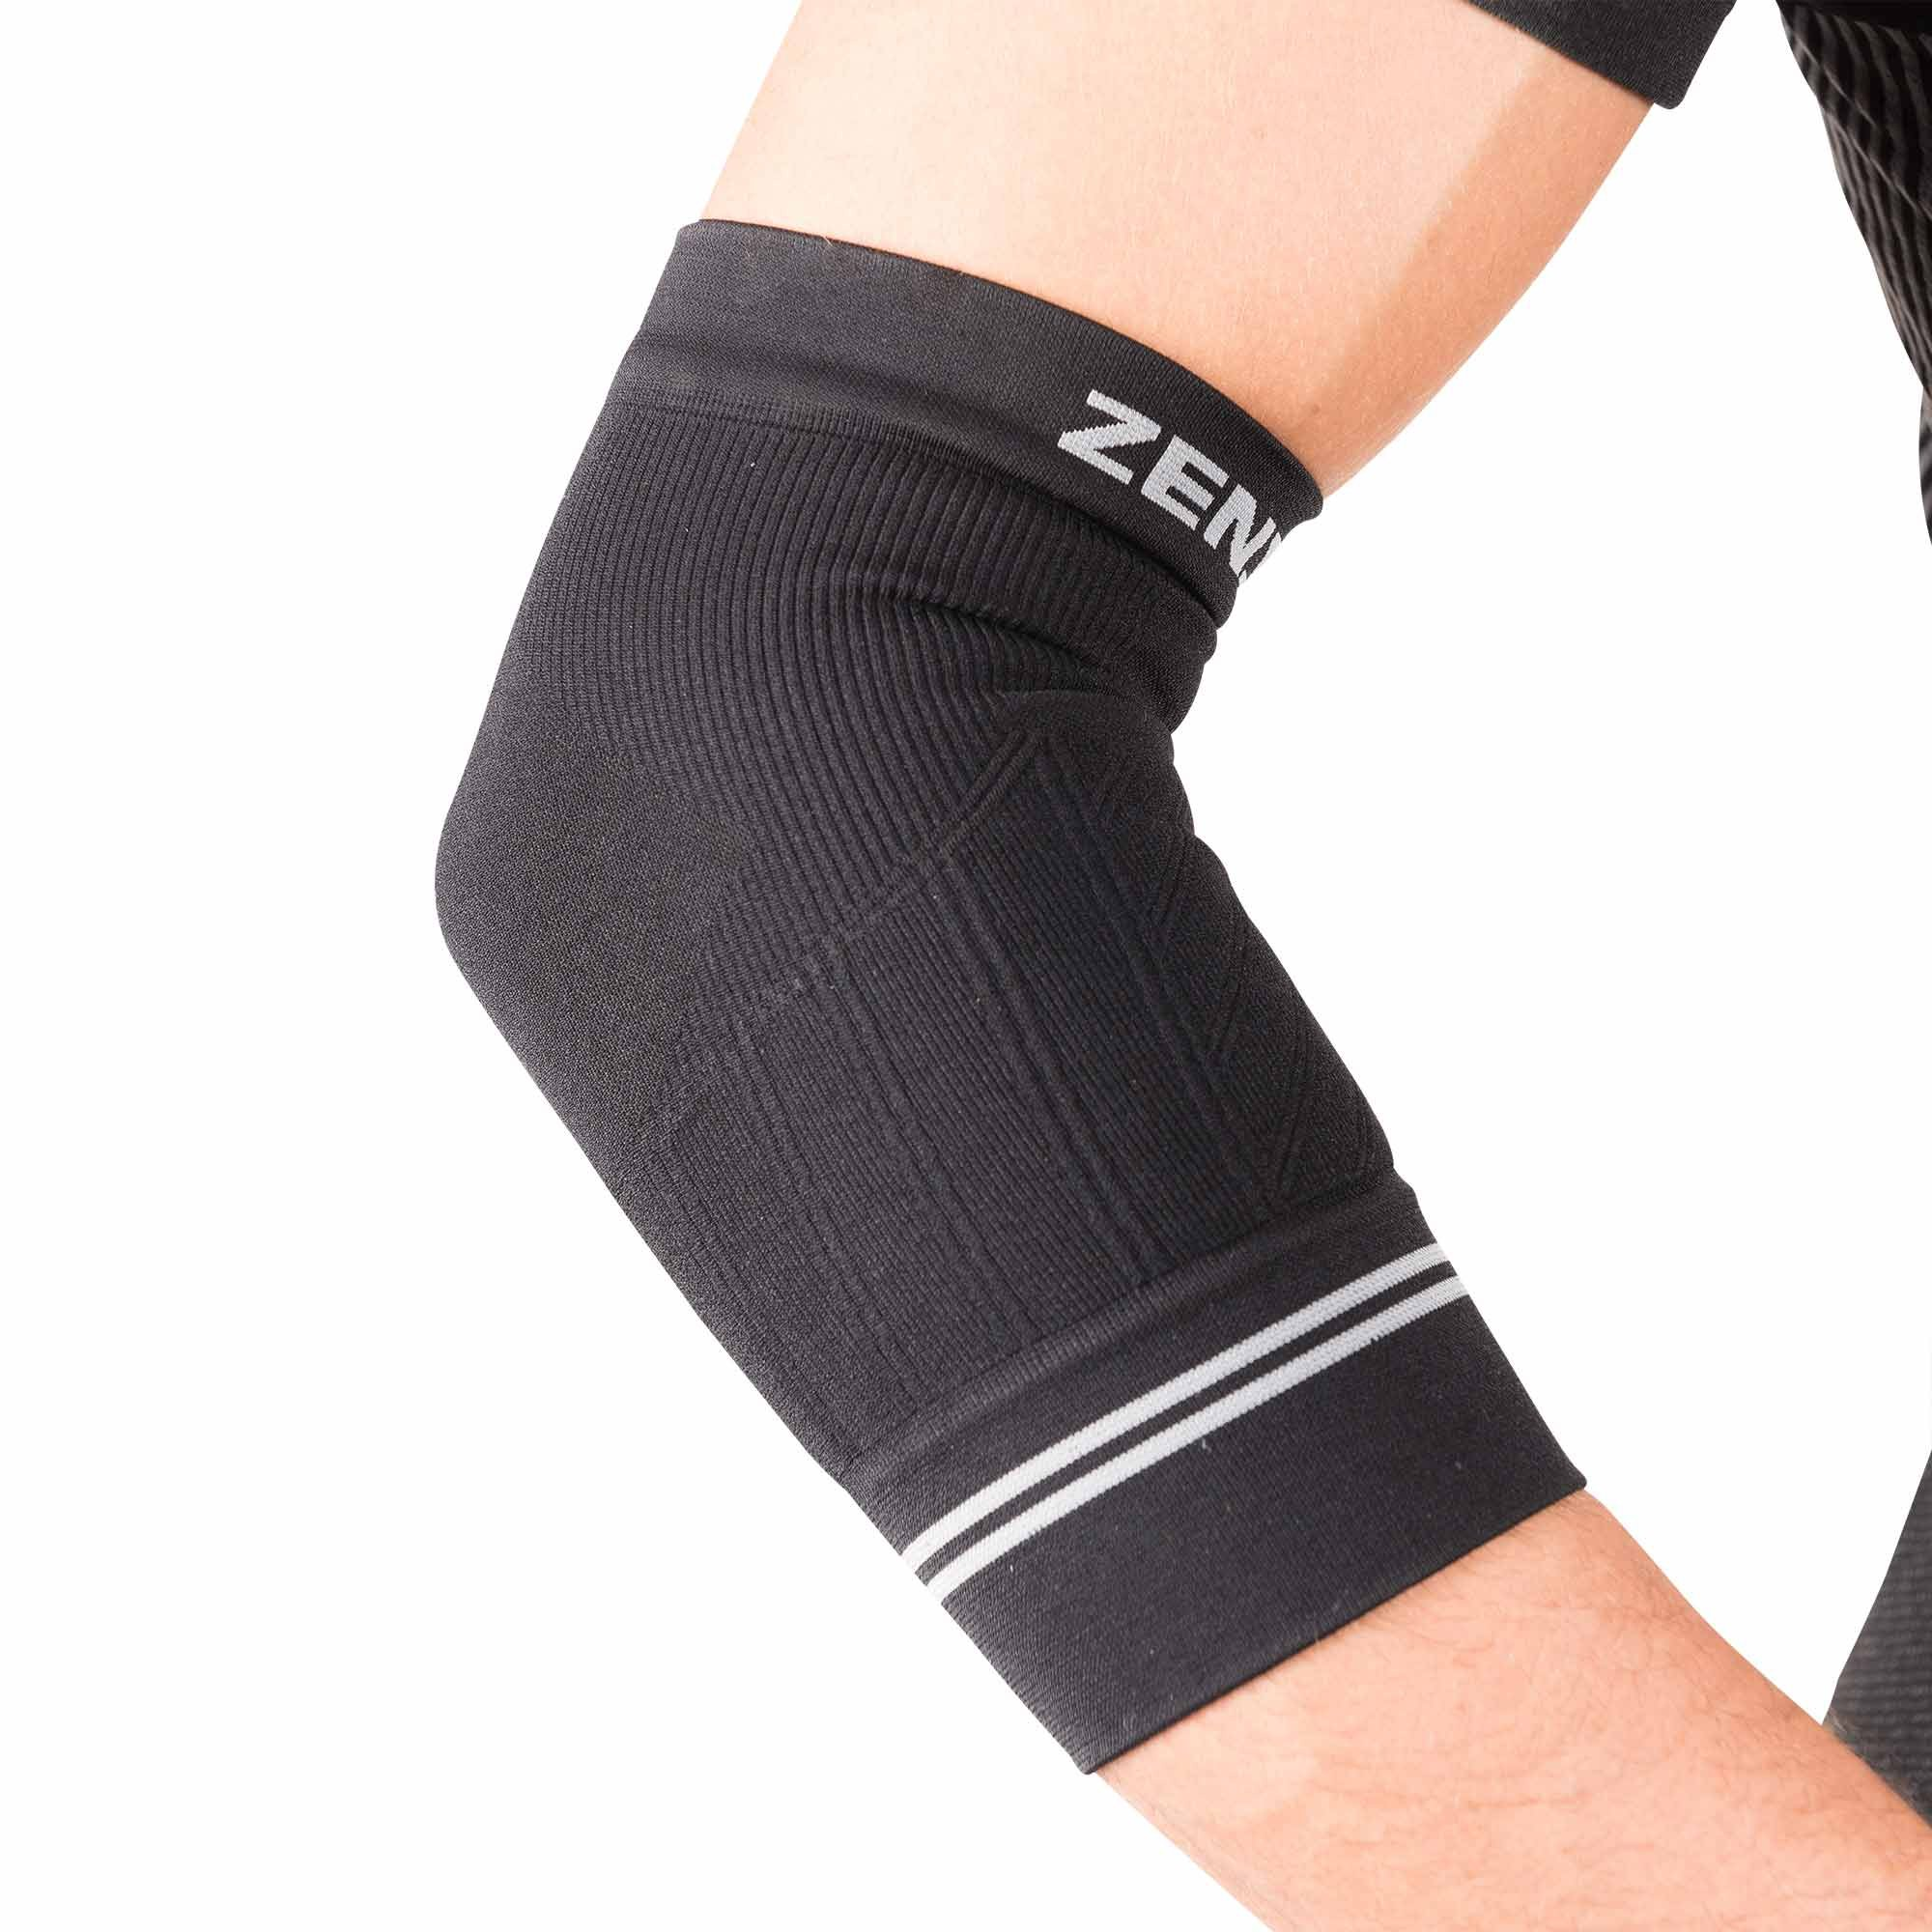 Zensah Compression Tennis Elbow Sleeve for Elbow Tendonitis, Tennis Elbow, Golfer's Elbow - Elbow Support, Elbow Brace,Small,Black by Zensah